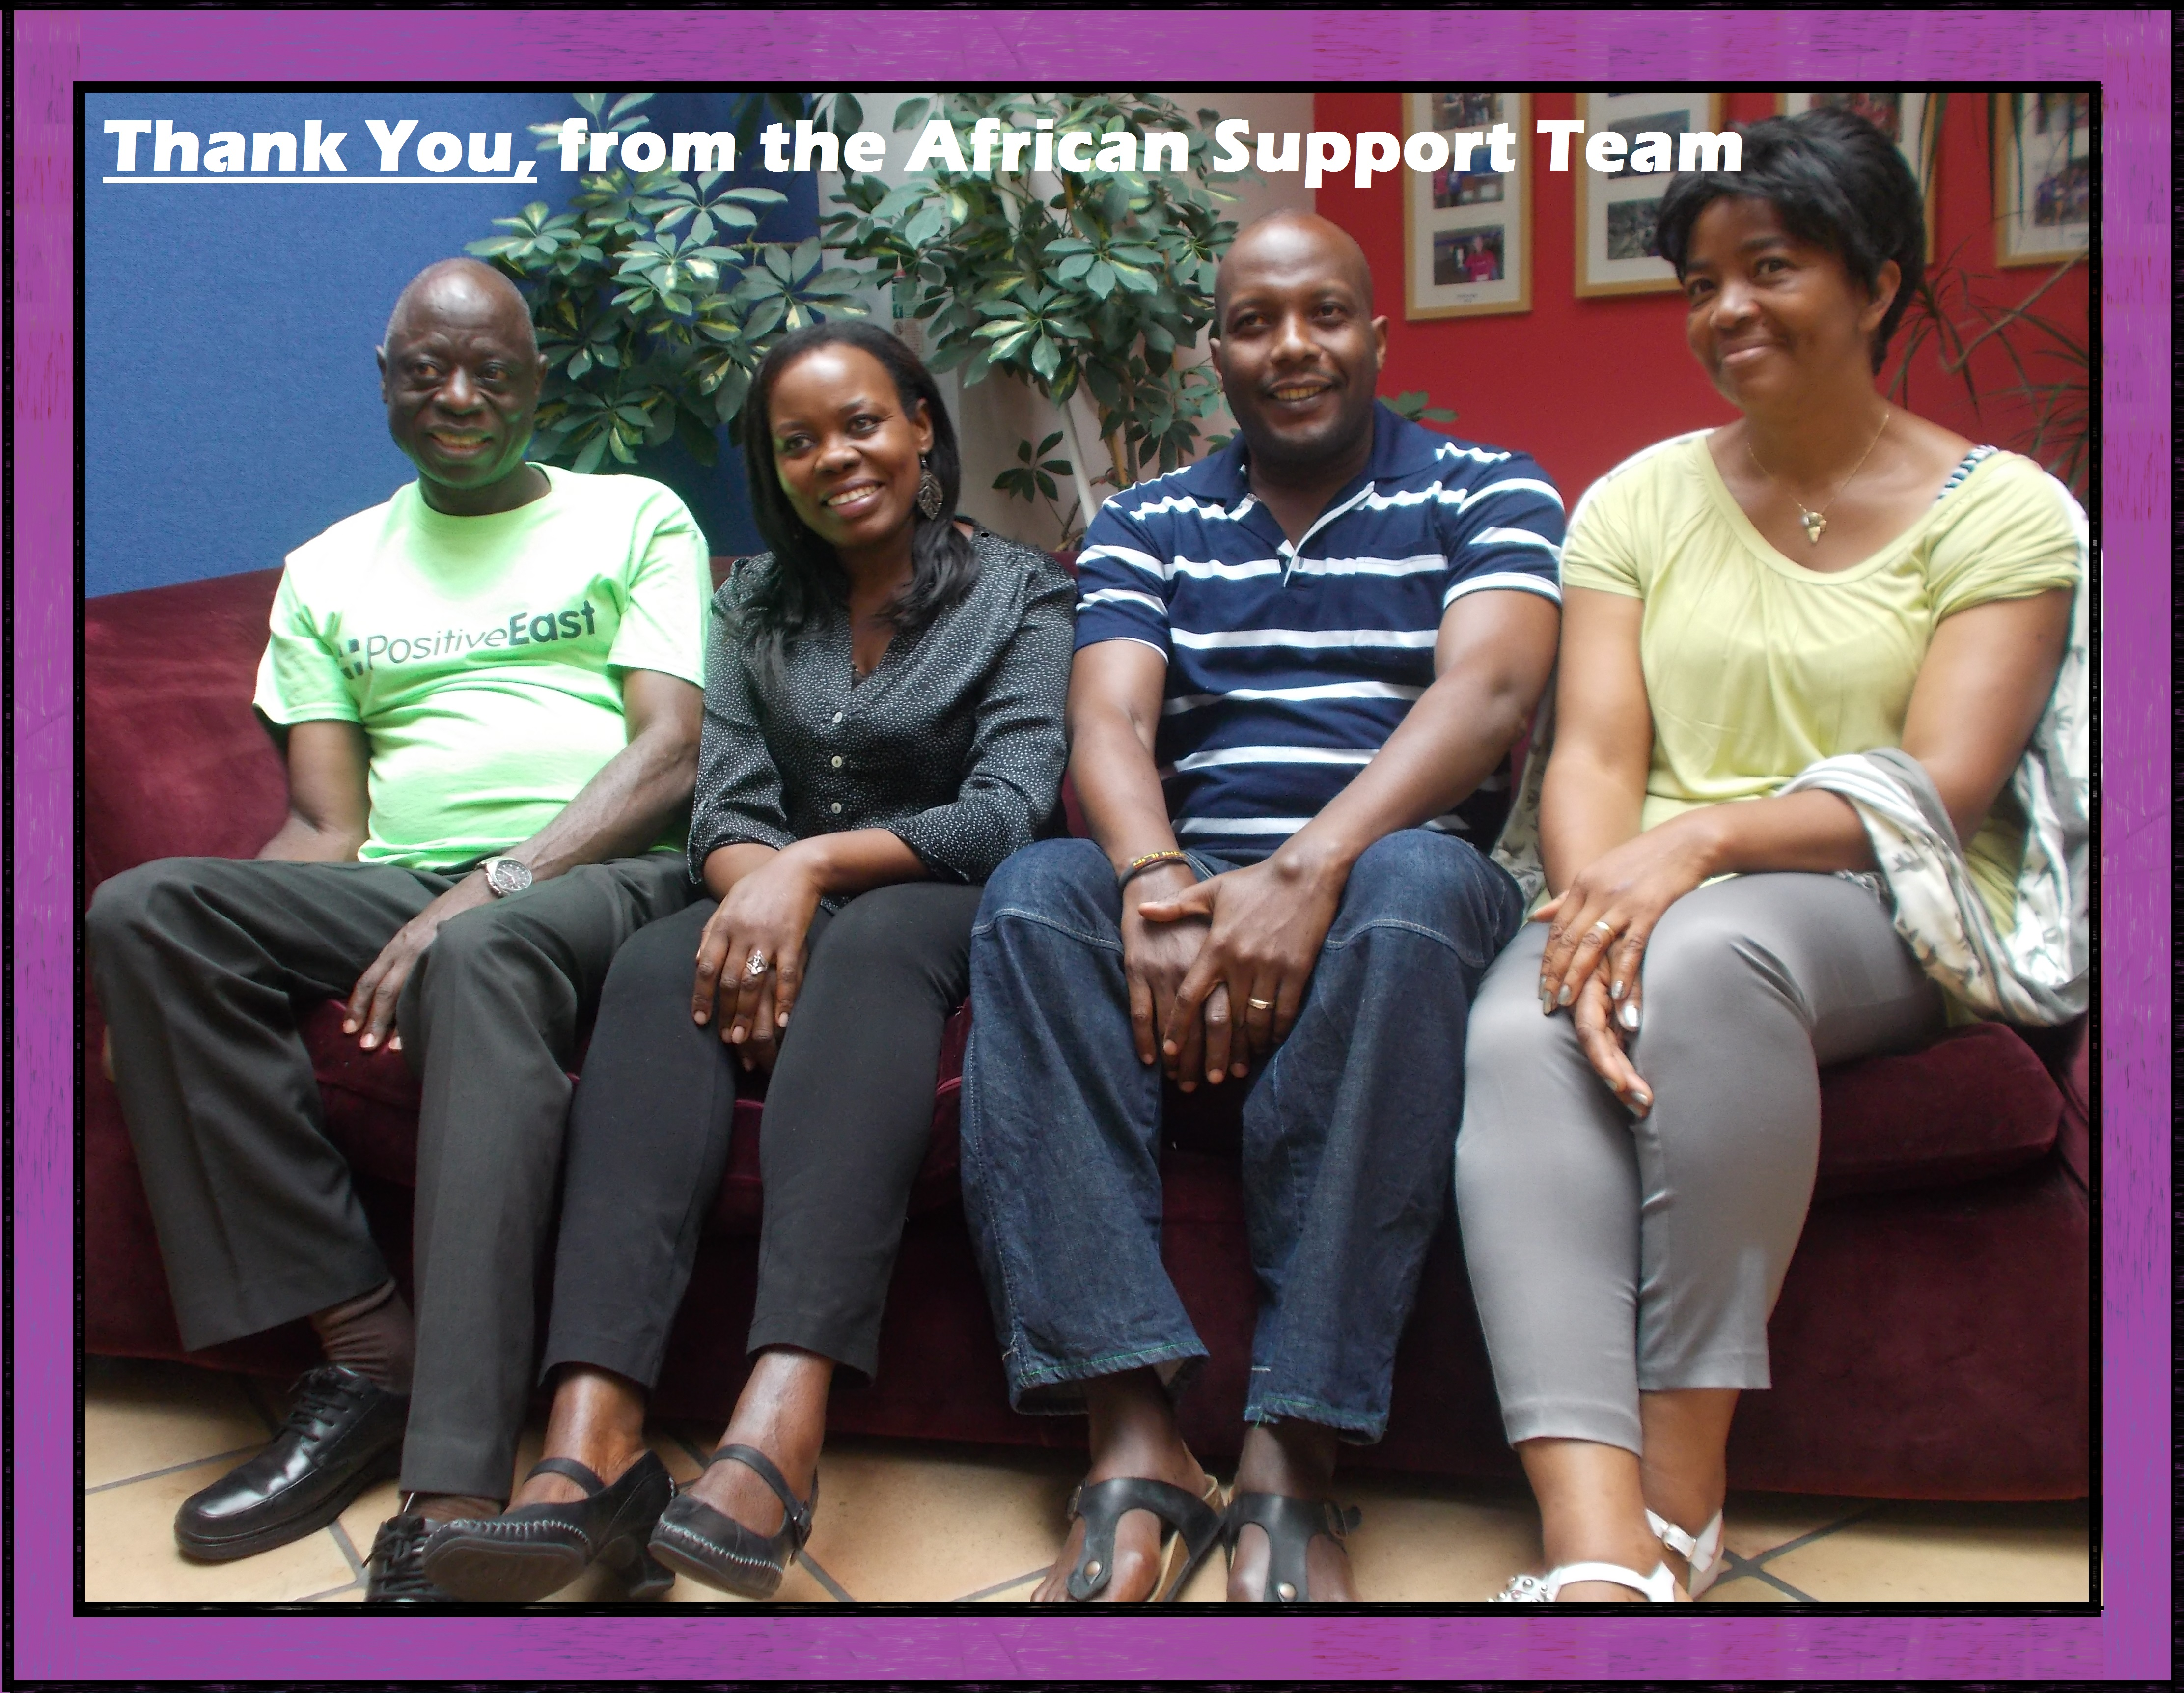 Thank you from the African Support Team